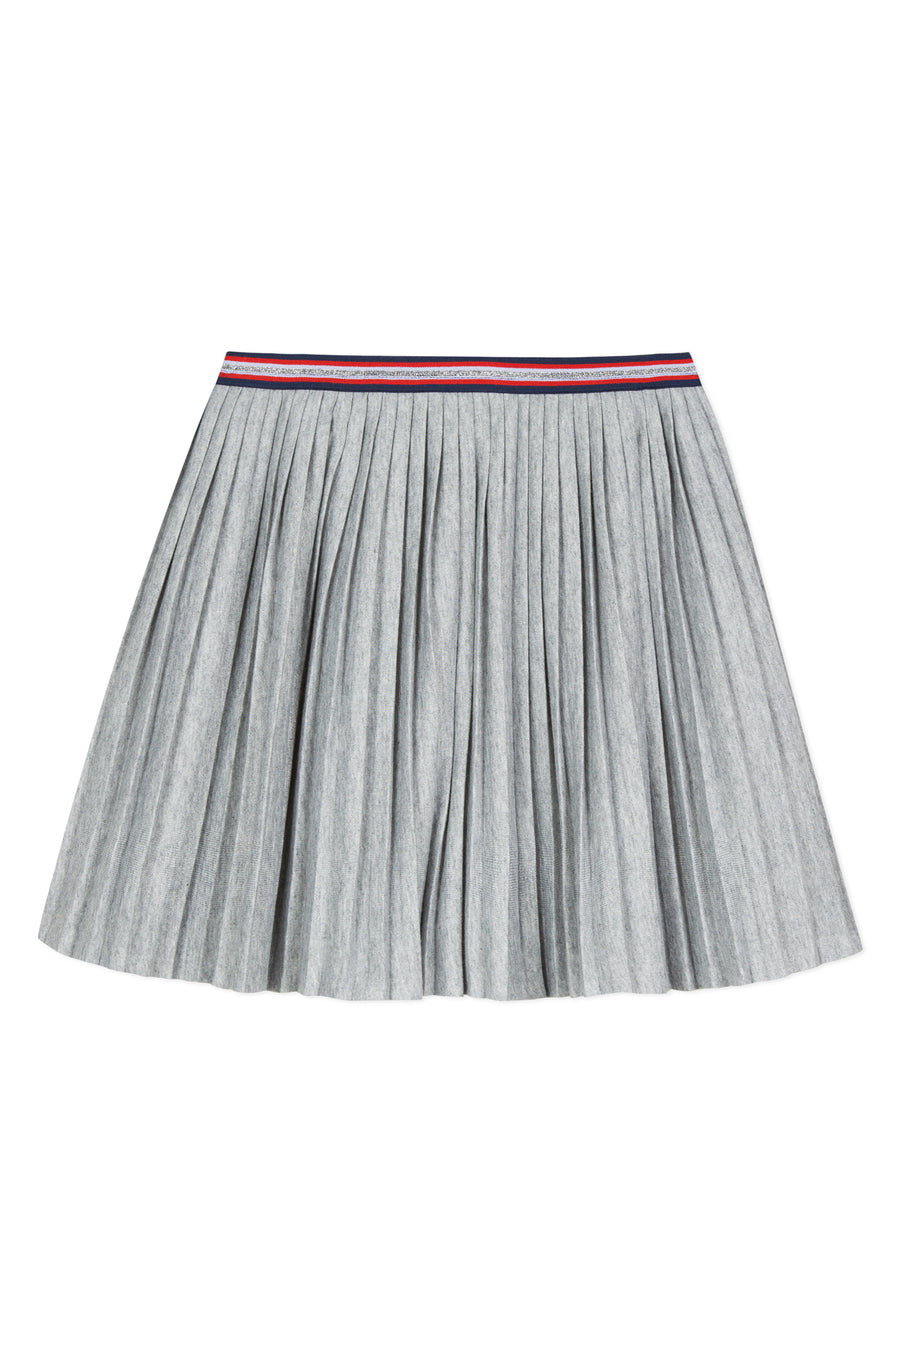 3pommes Silver Pleated Girls Skirt